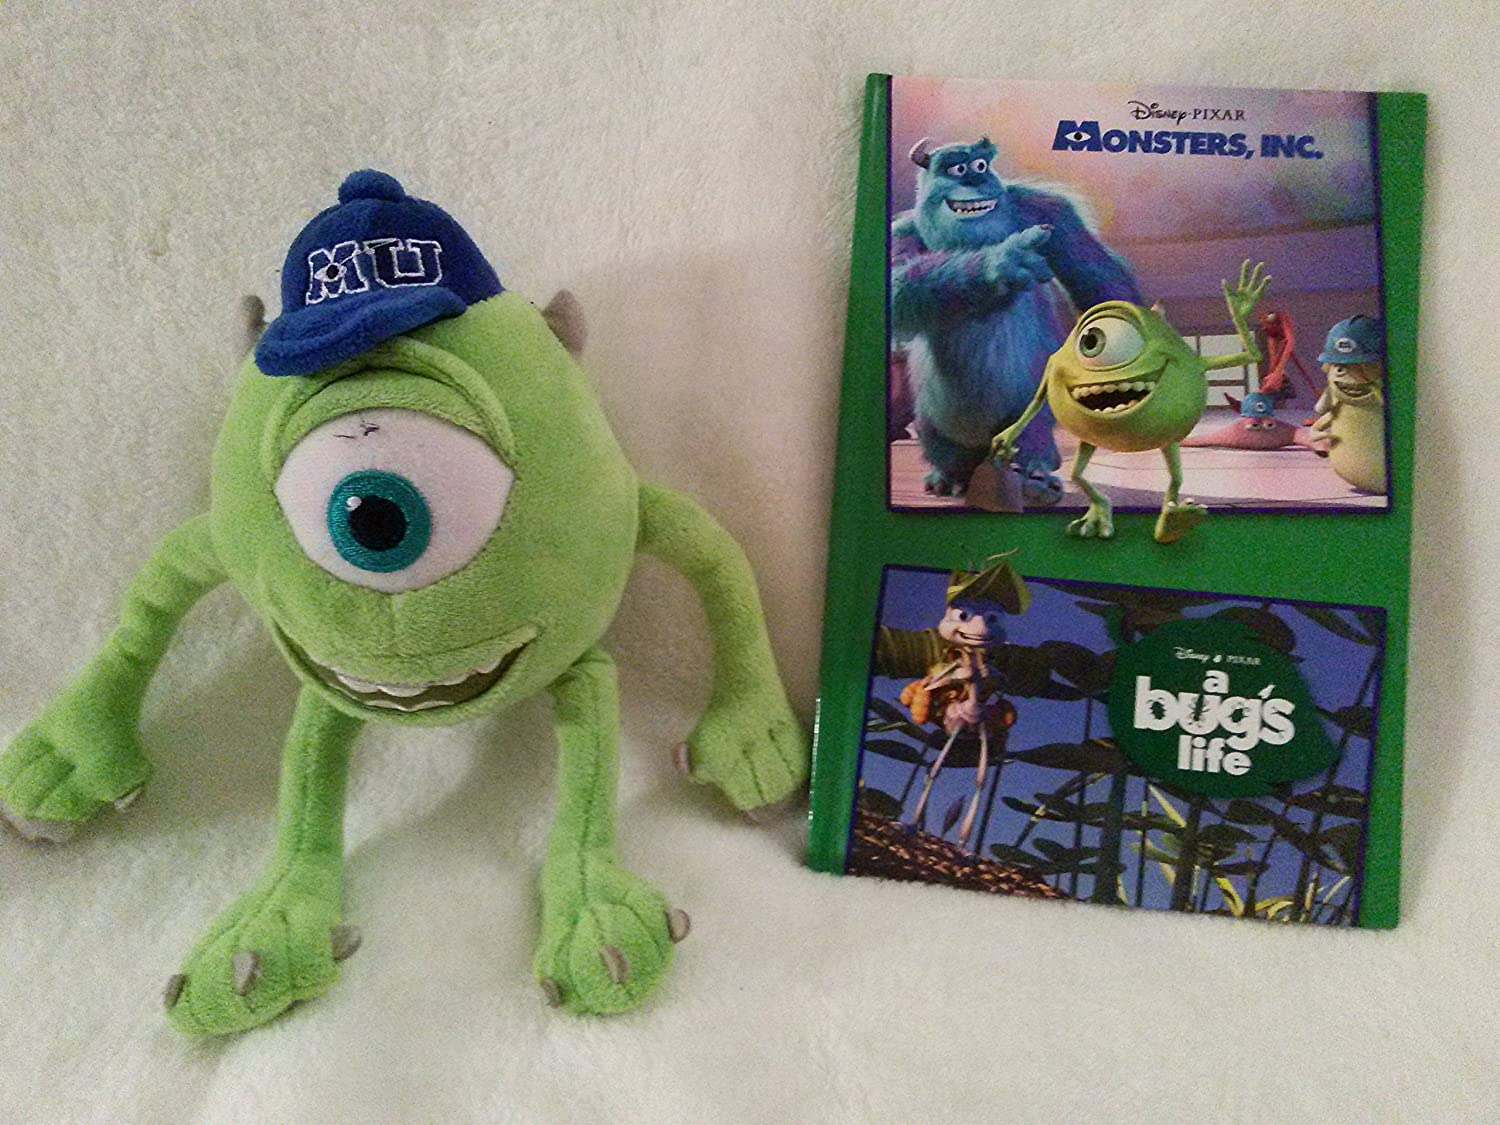 34f5afc2b70 Amazon.com  Monsters Inc University Set  Mike Wazowski 8.5   Inches By  Disney Pixar and Disney Pixar Monsters s Inc and A Bug s Life 2 Stories in  1 Book  ...